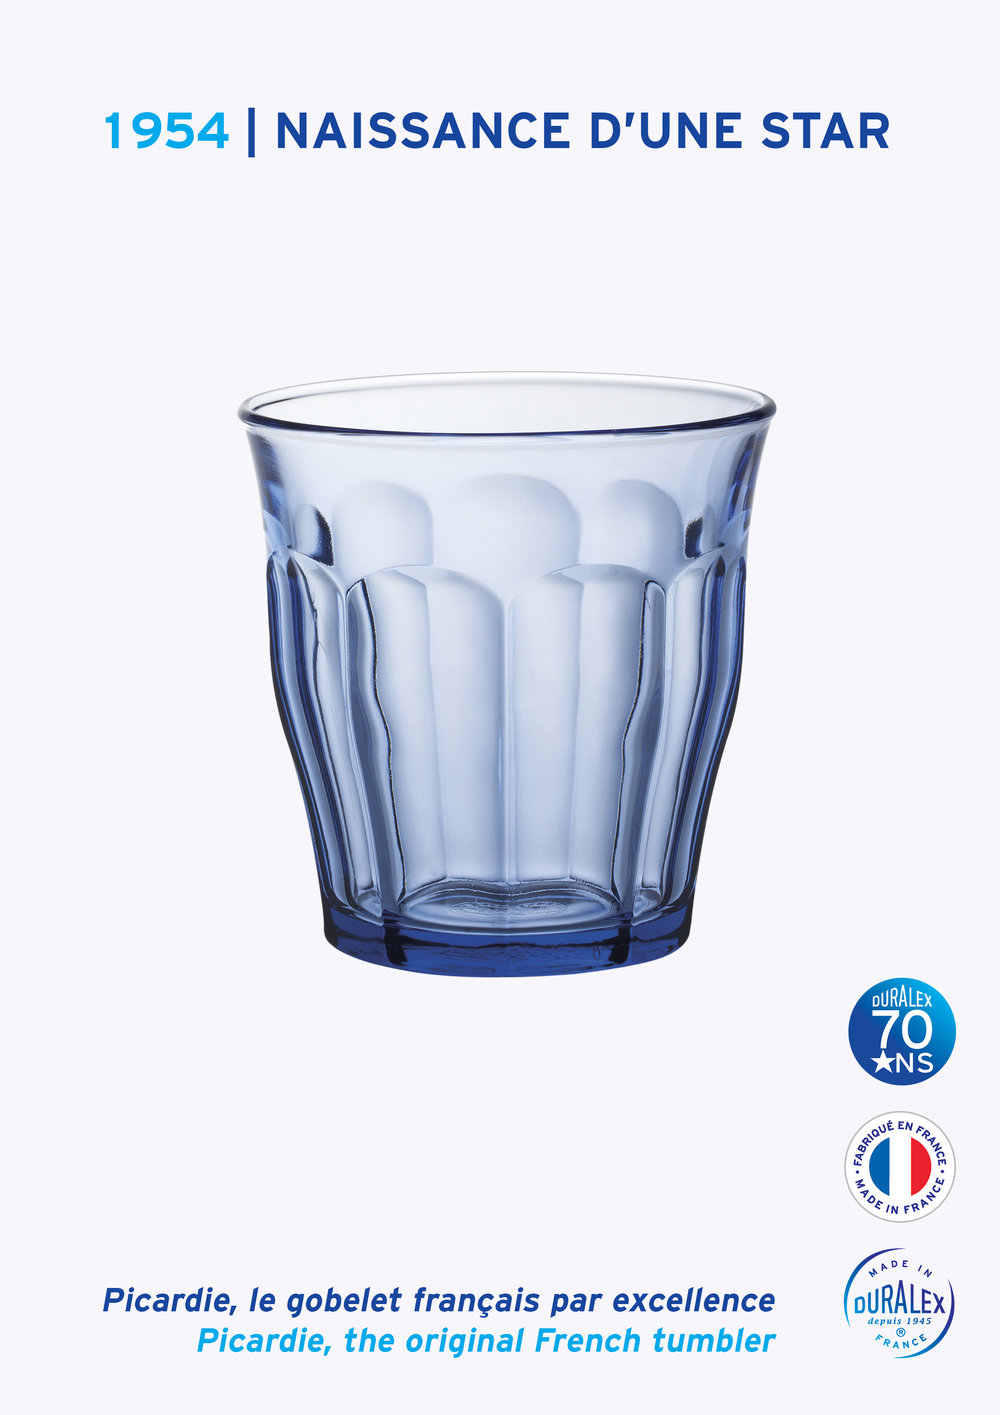 Best_Everyday_Glasses-Duralex_Picardie_Clear_Tumbler-Awards.jpg